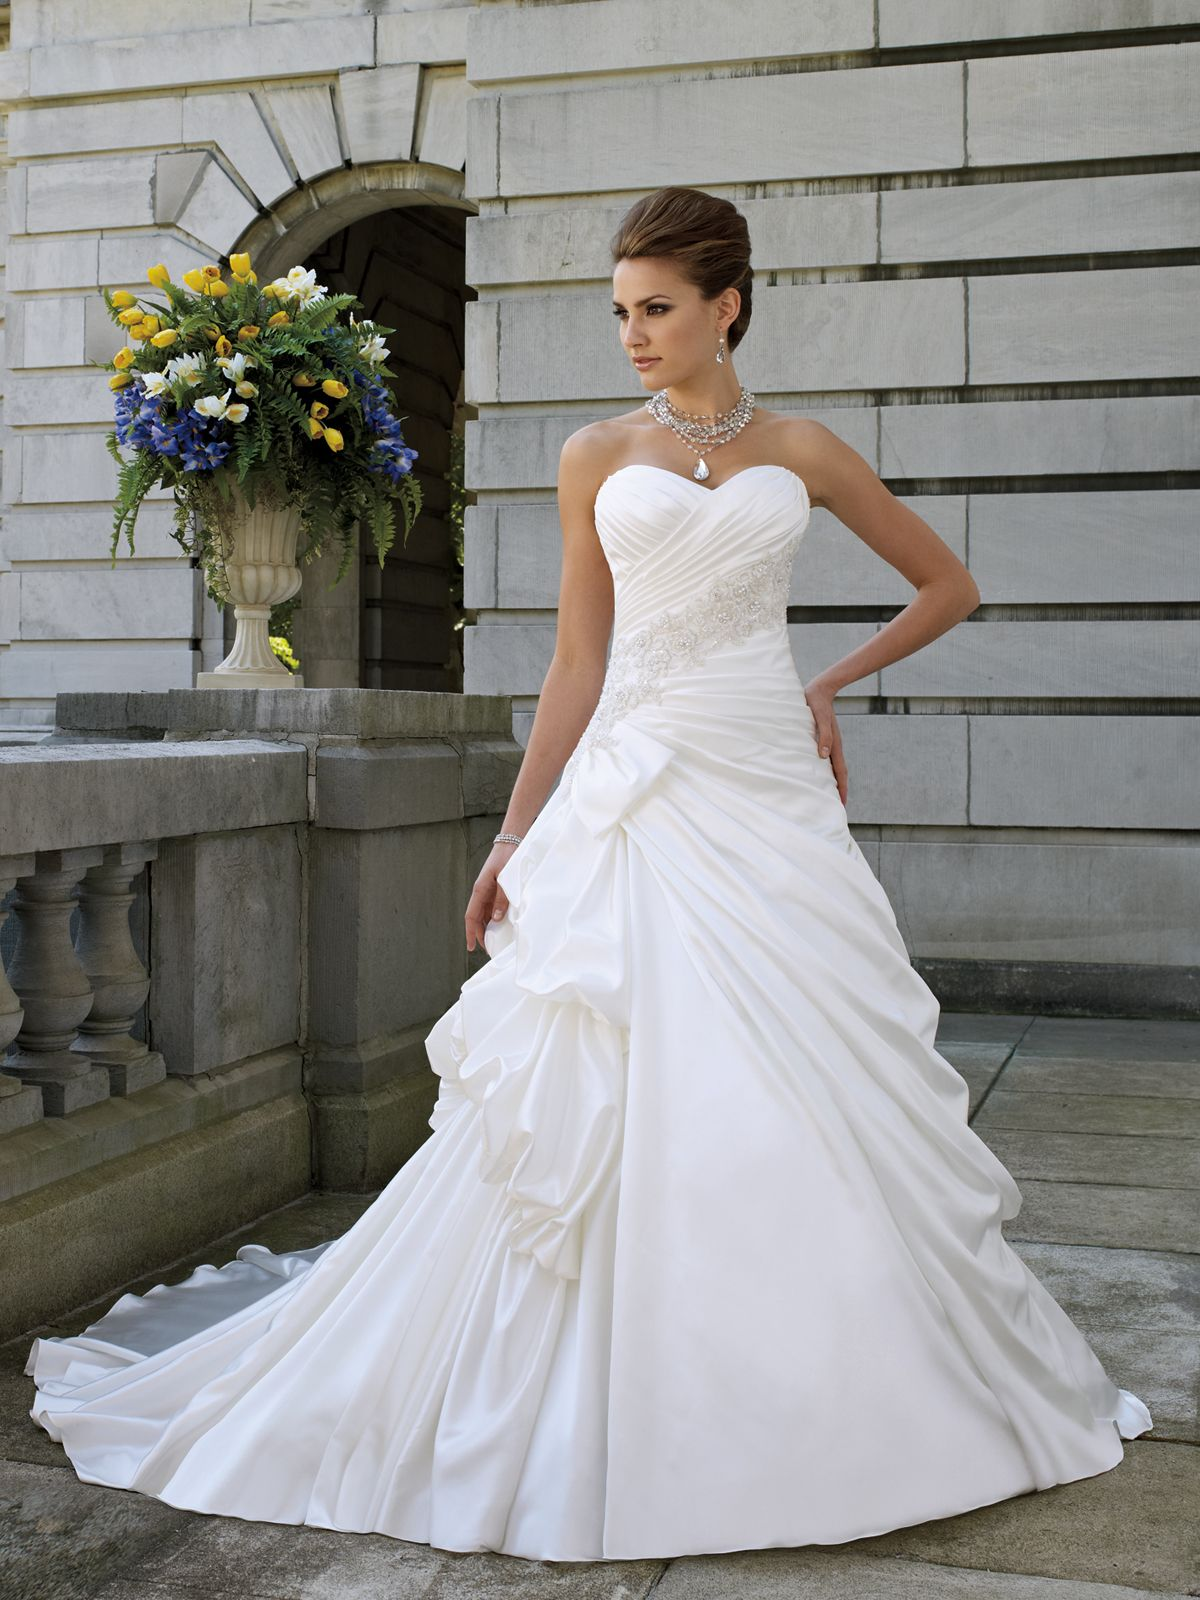 Mon cheri wedding dresses  Wedding dresses and bridals gowns by David Tutera for Mon Cheri